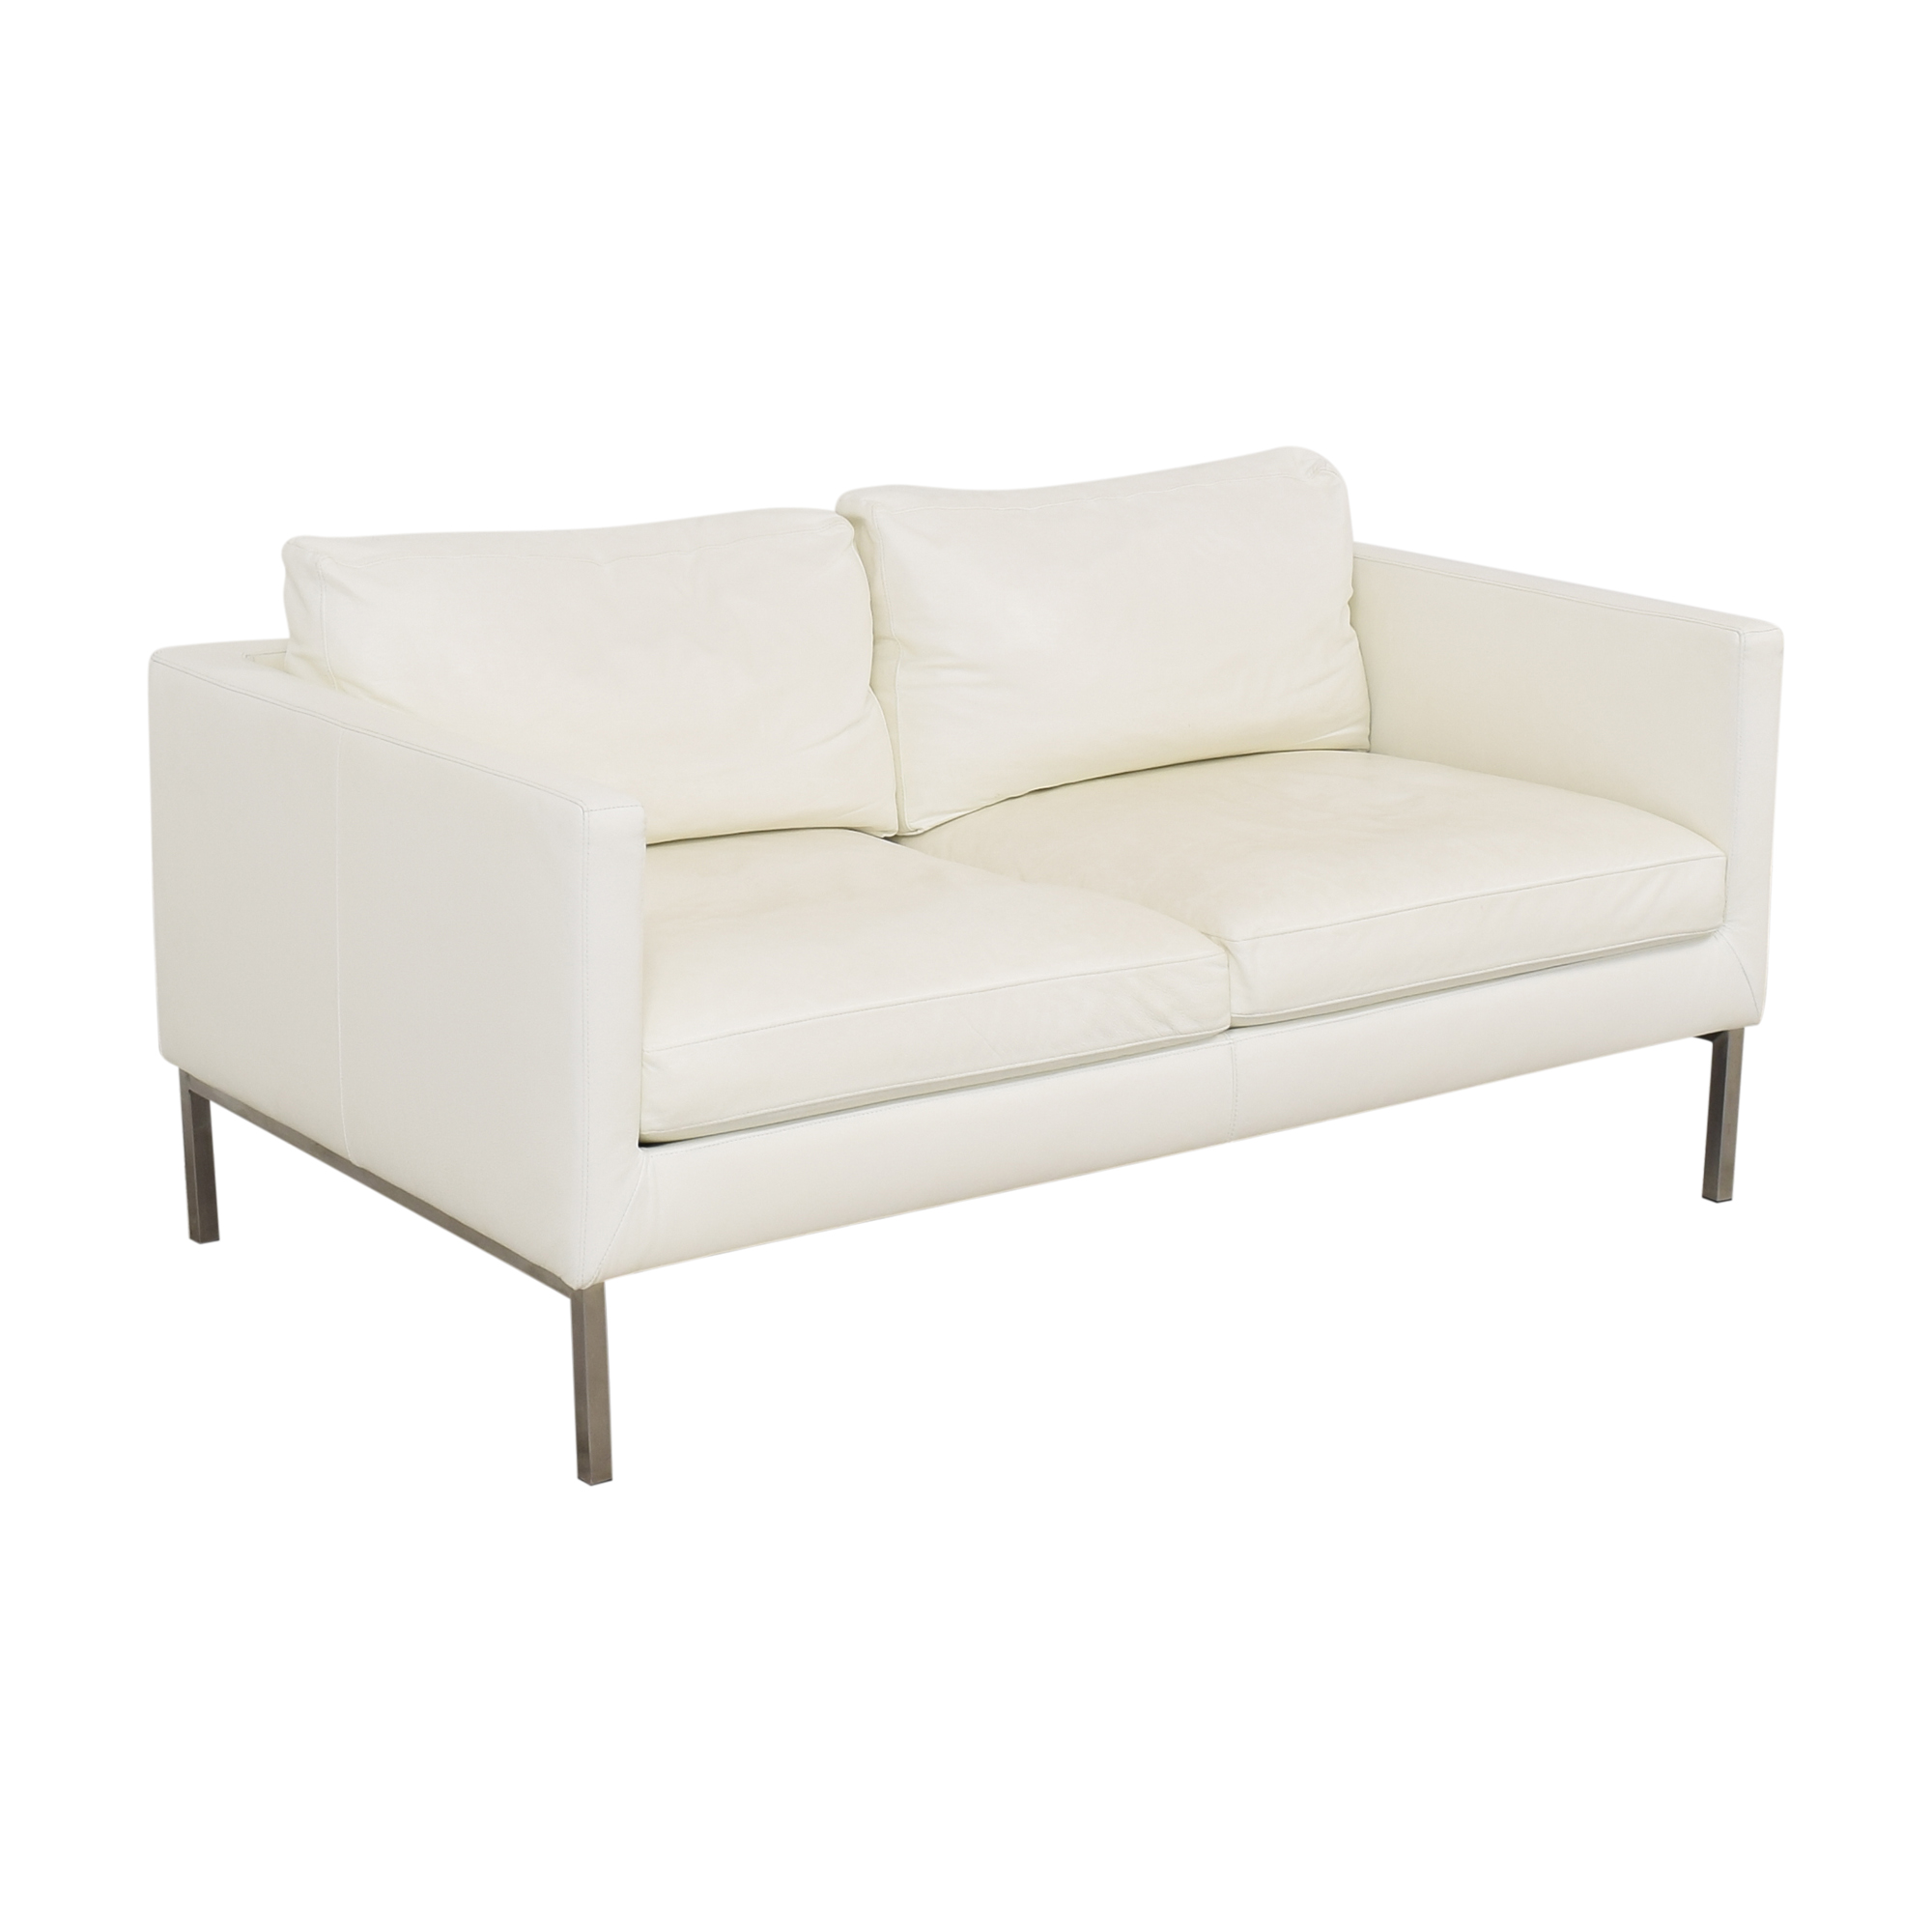 American Leather American Leather Two Cushion Sofa Loveseats